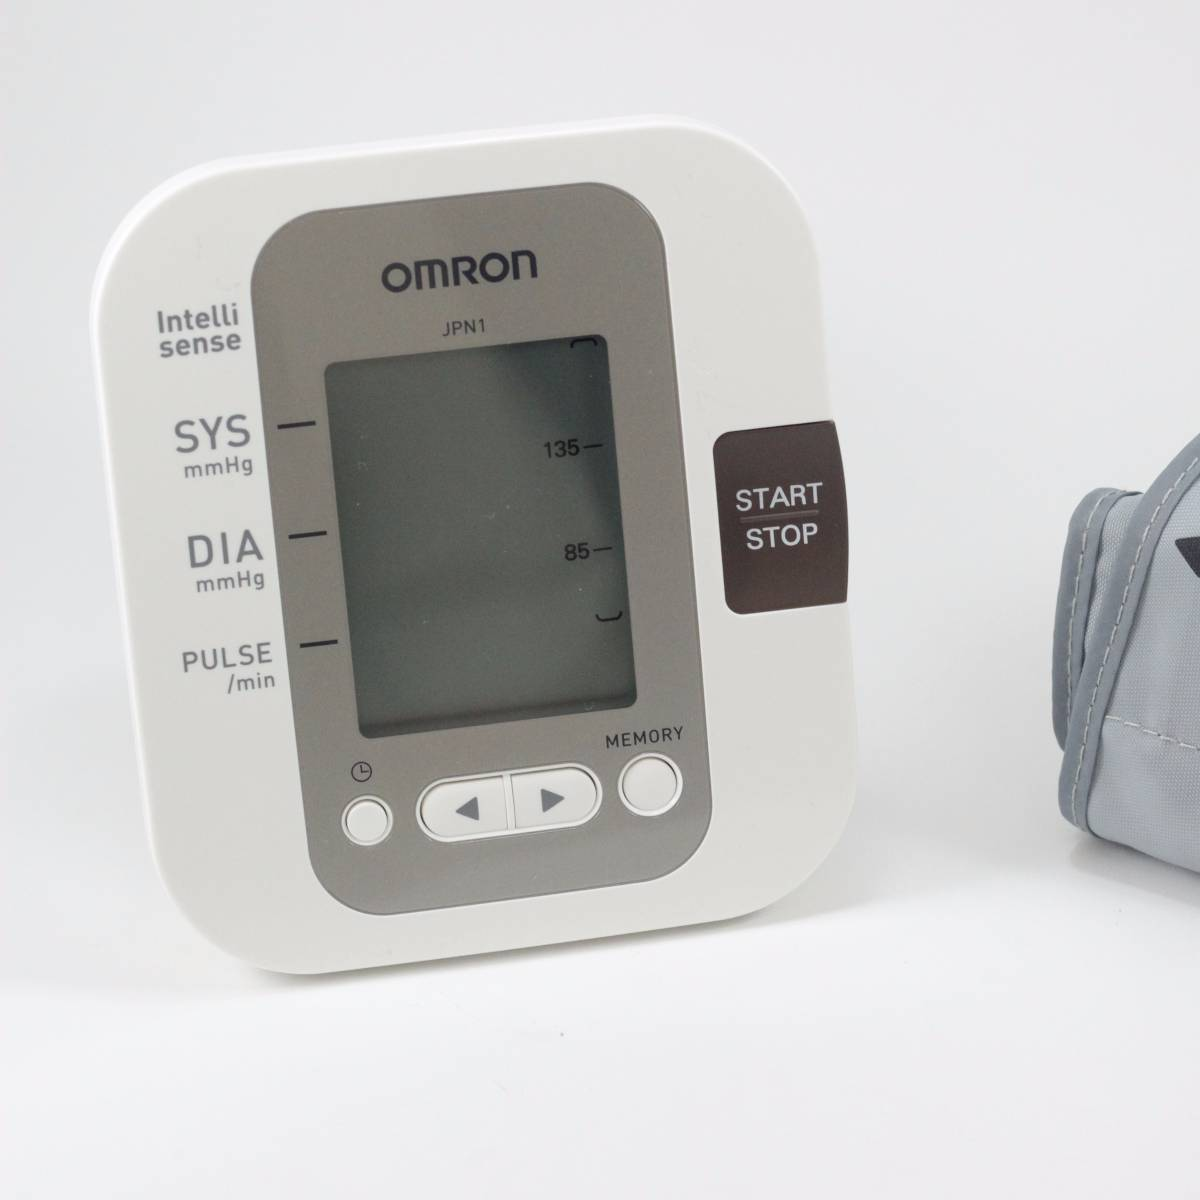 Tensi Digital Omron Jpn1 (discontinued)